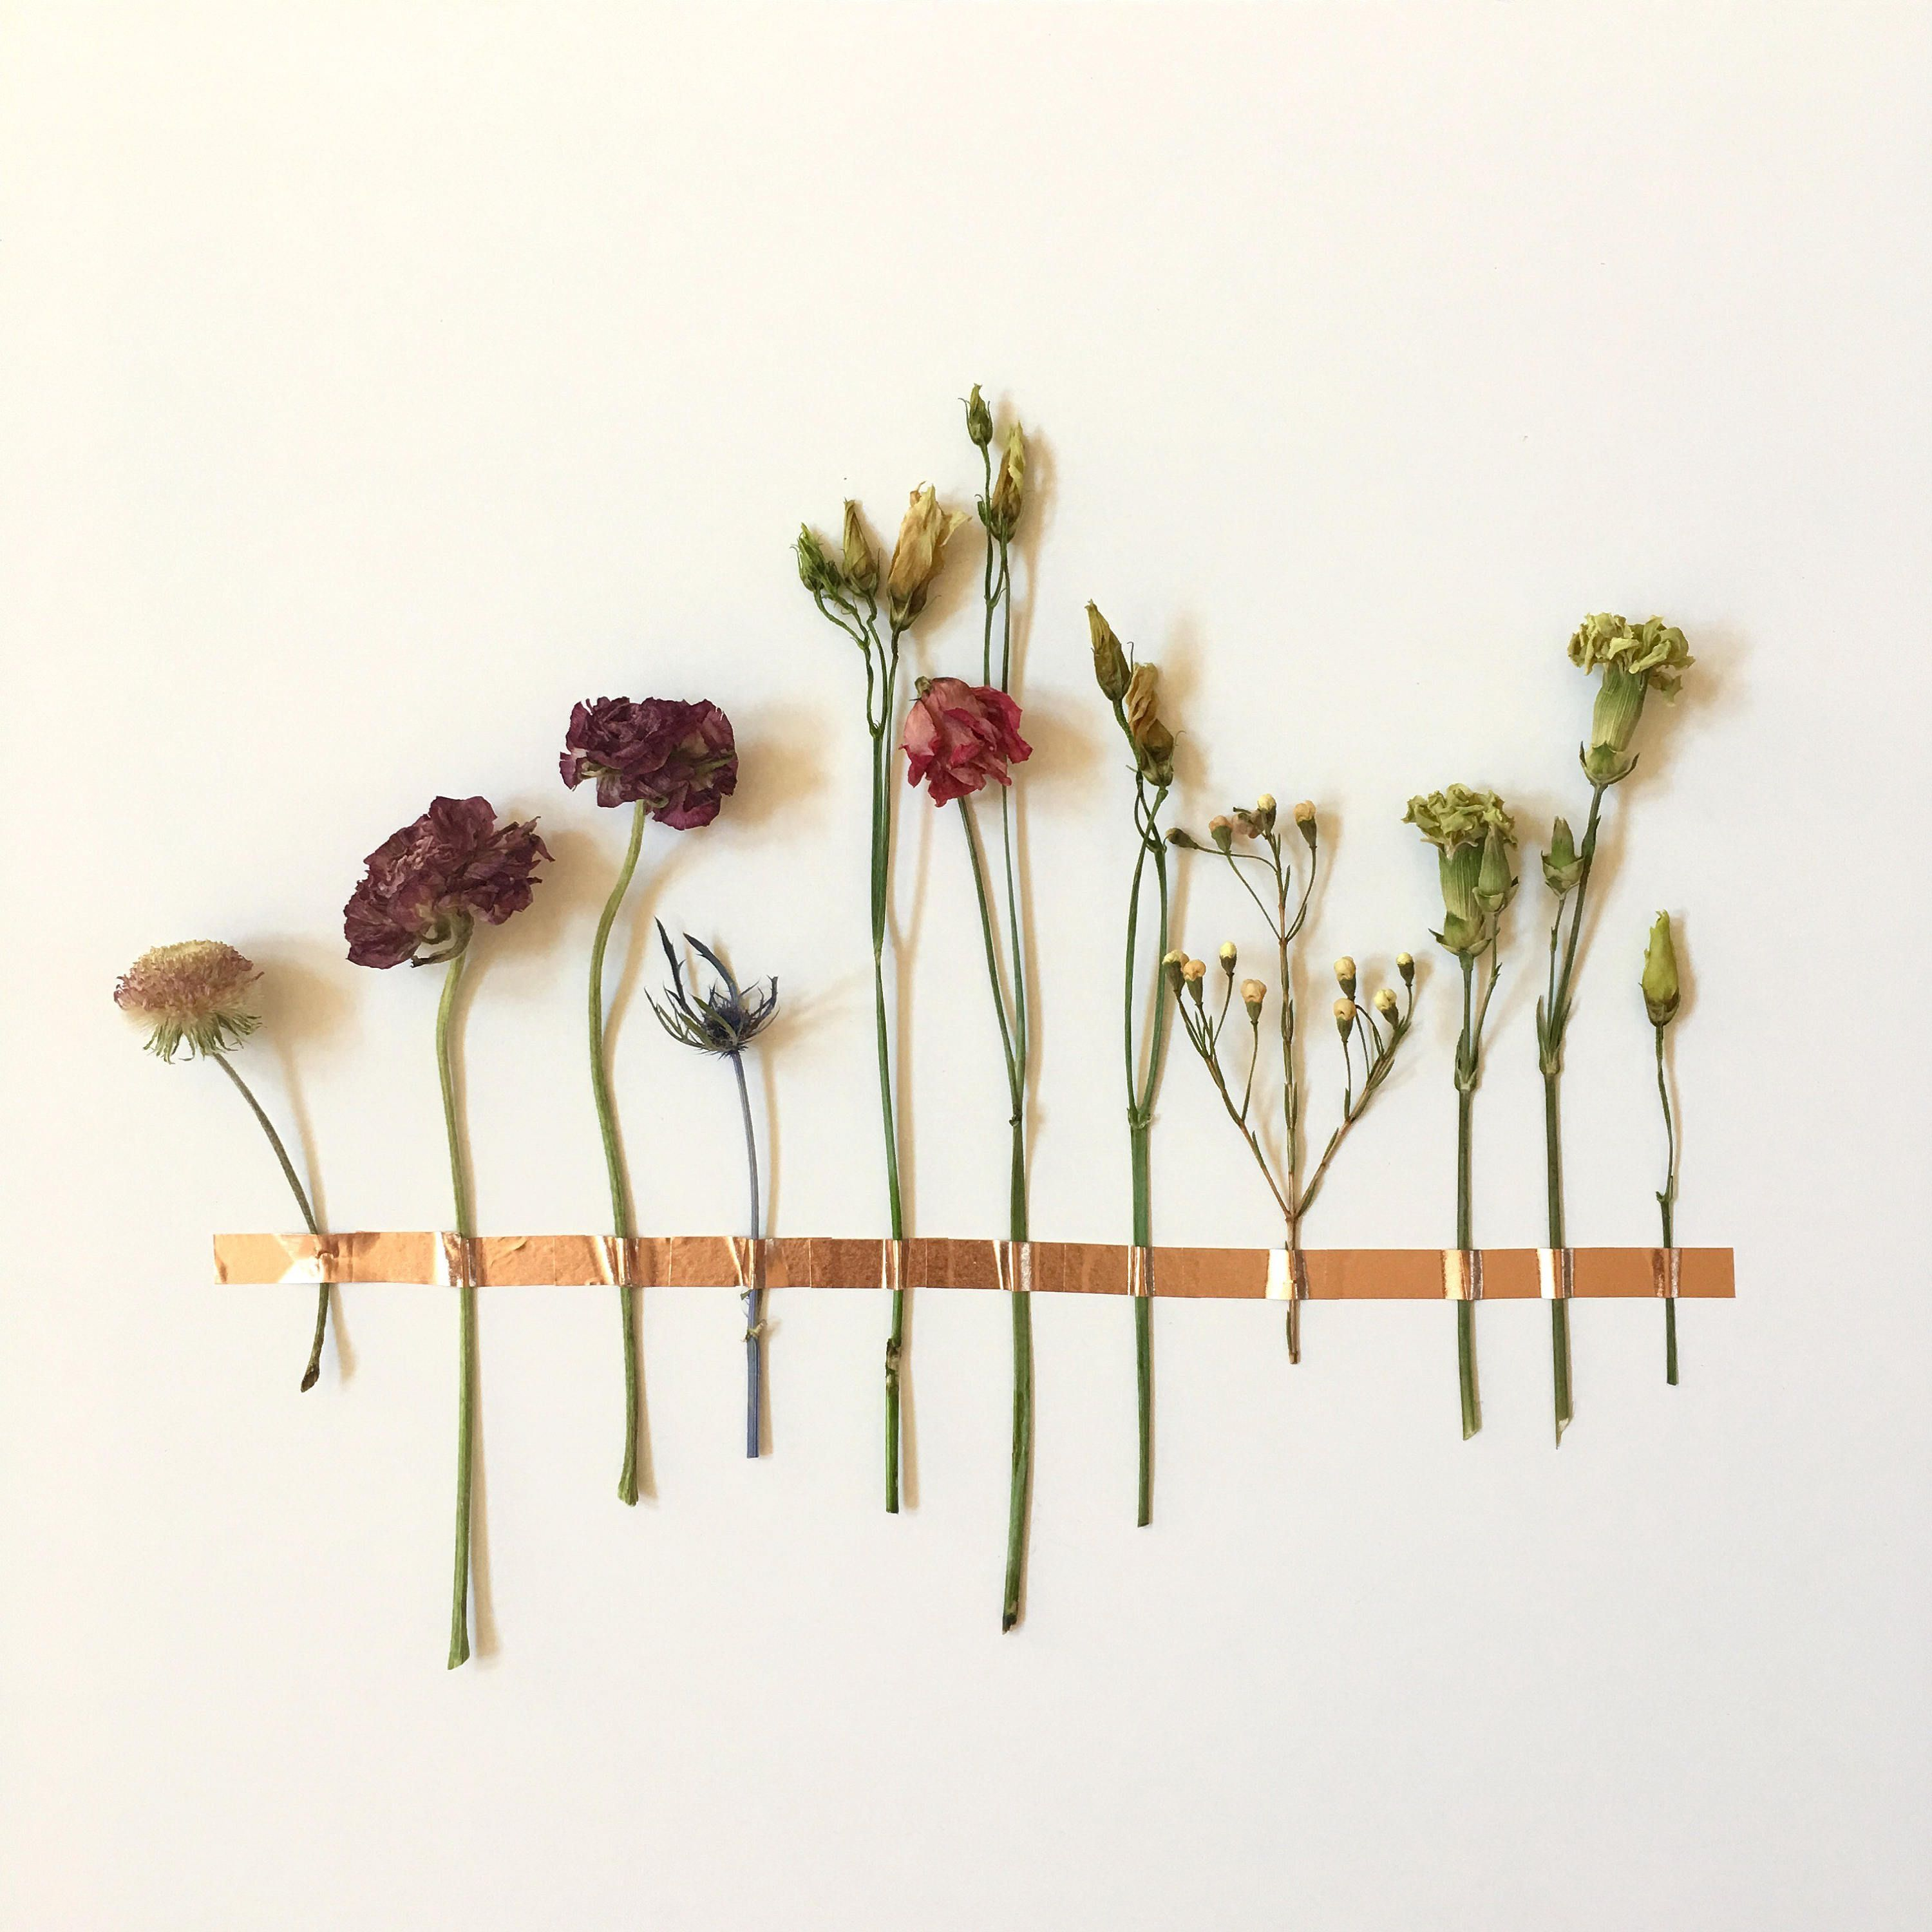 A Colorful Assortment Of Dried Flowers Affixed To Any Flat